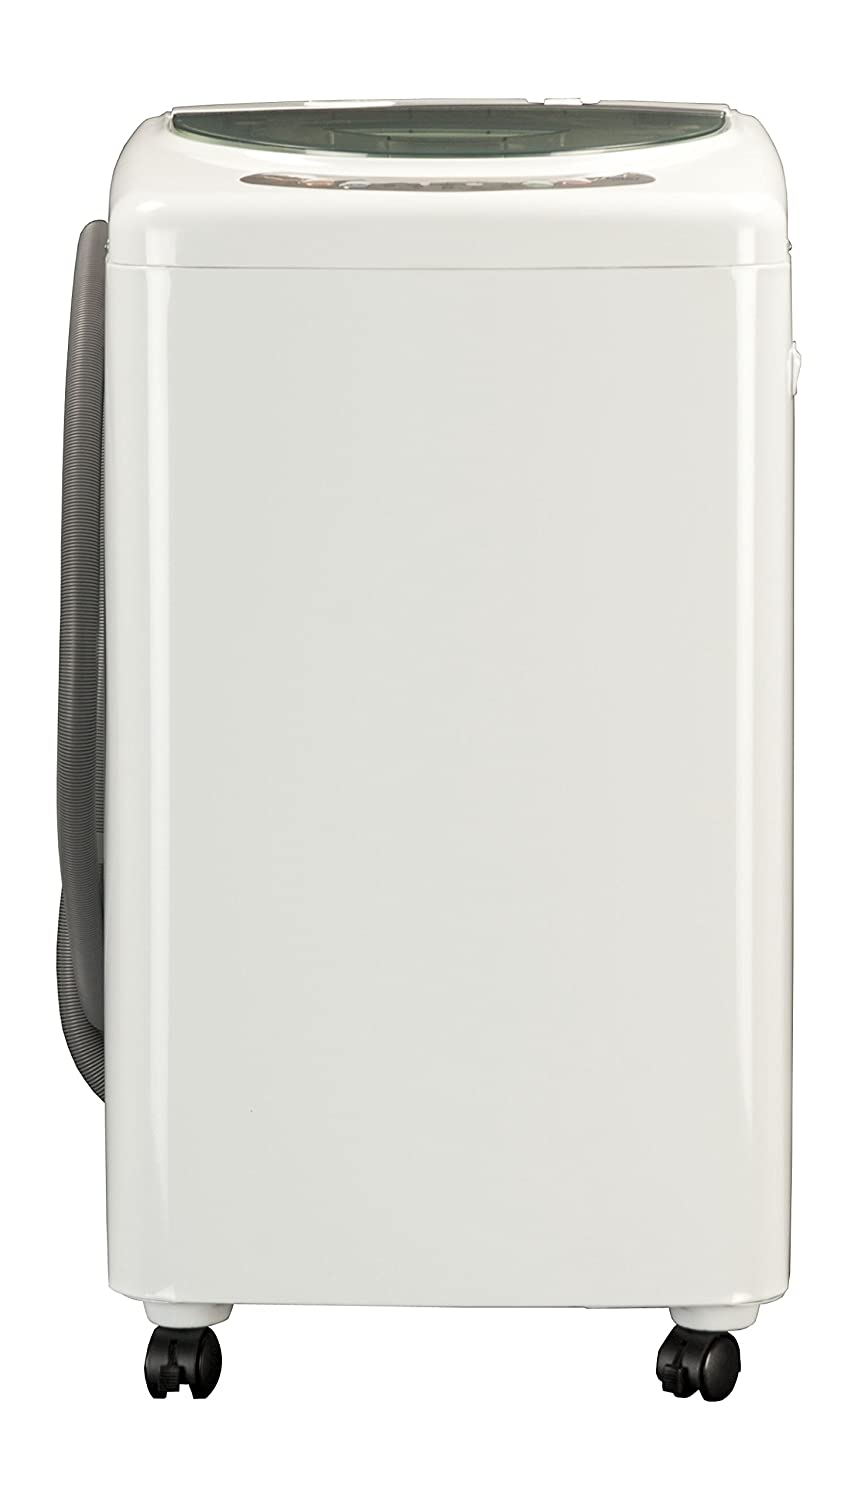 amazoncom haier hlp21n pulsator 1cubicfoot portable washer appliances